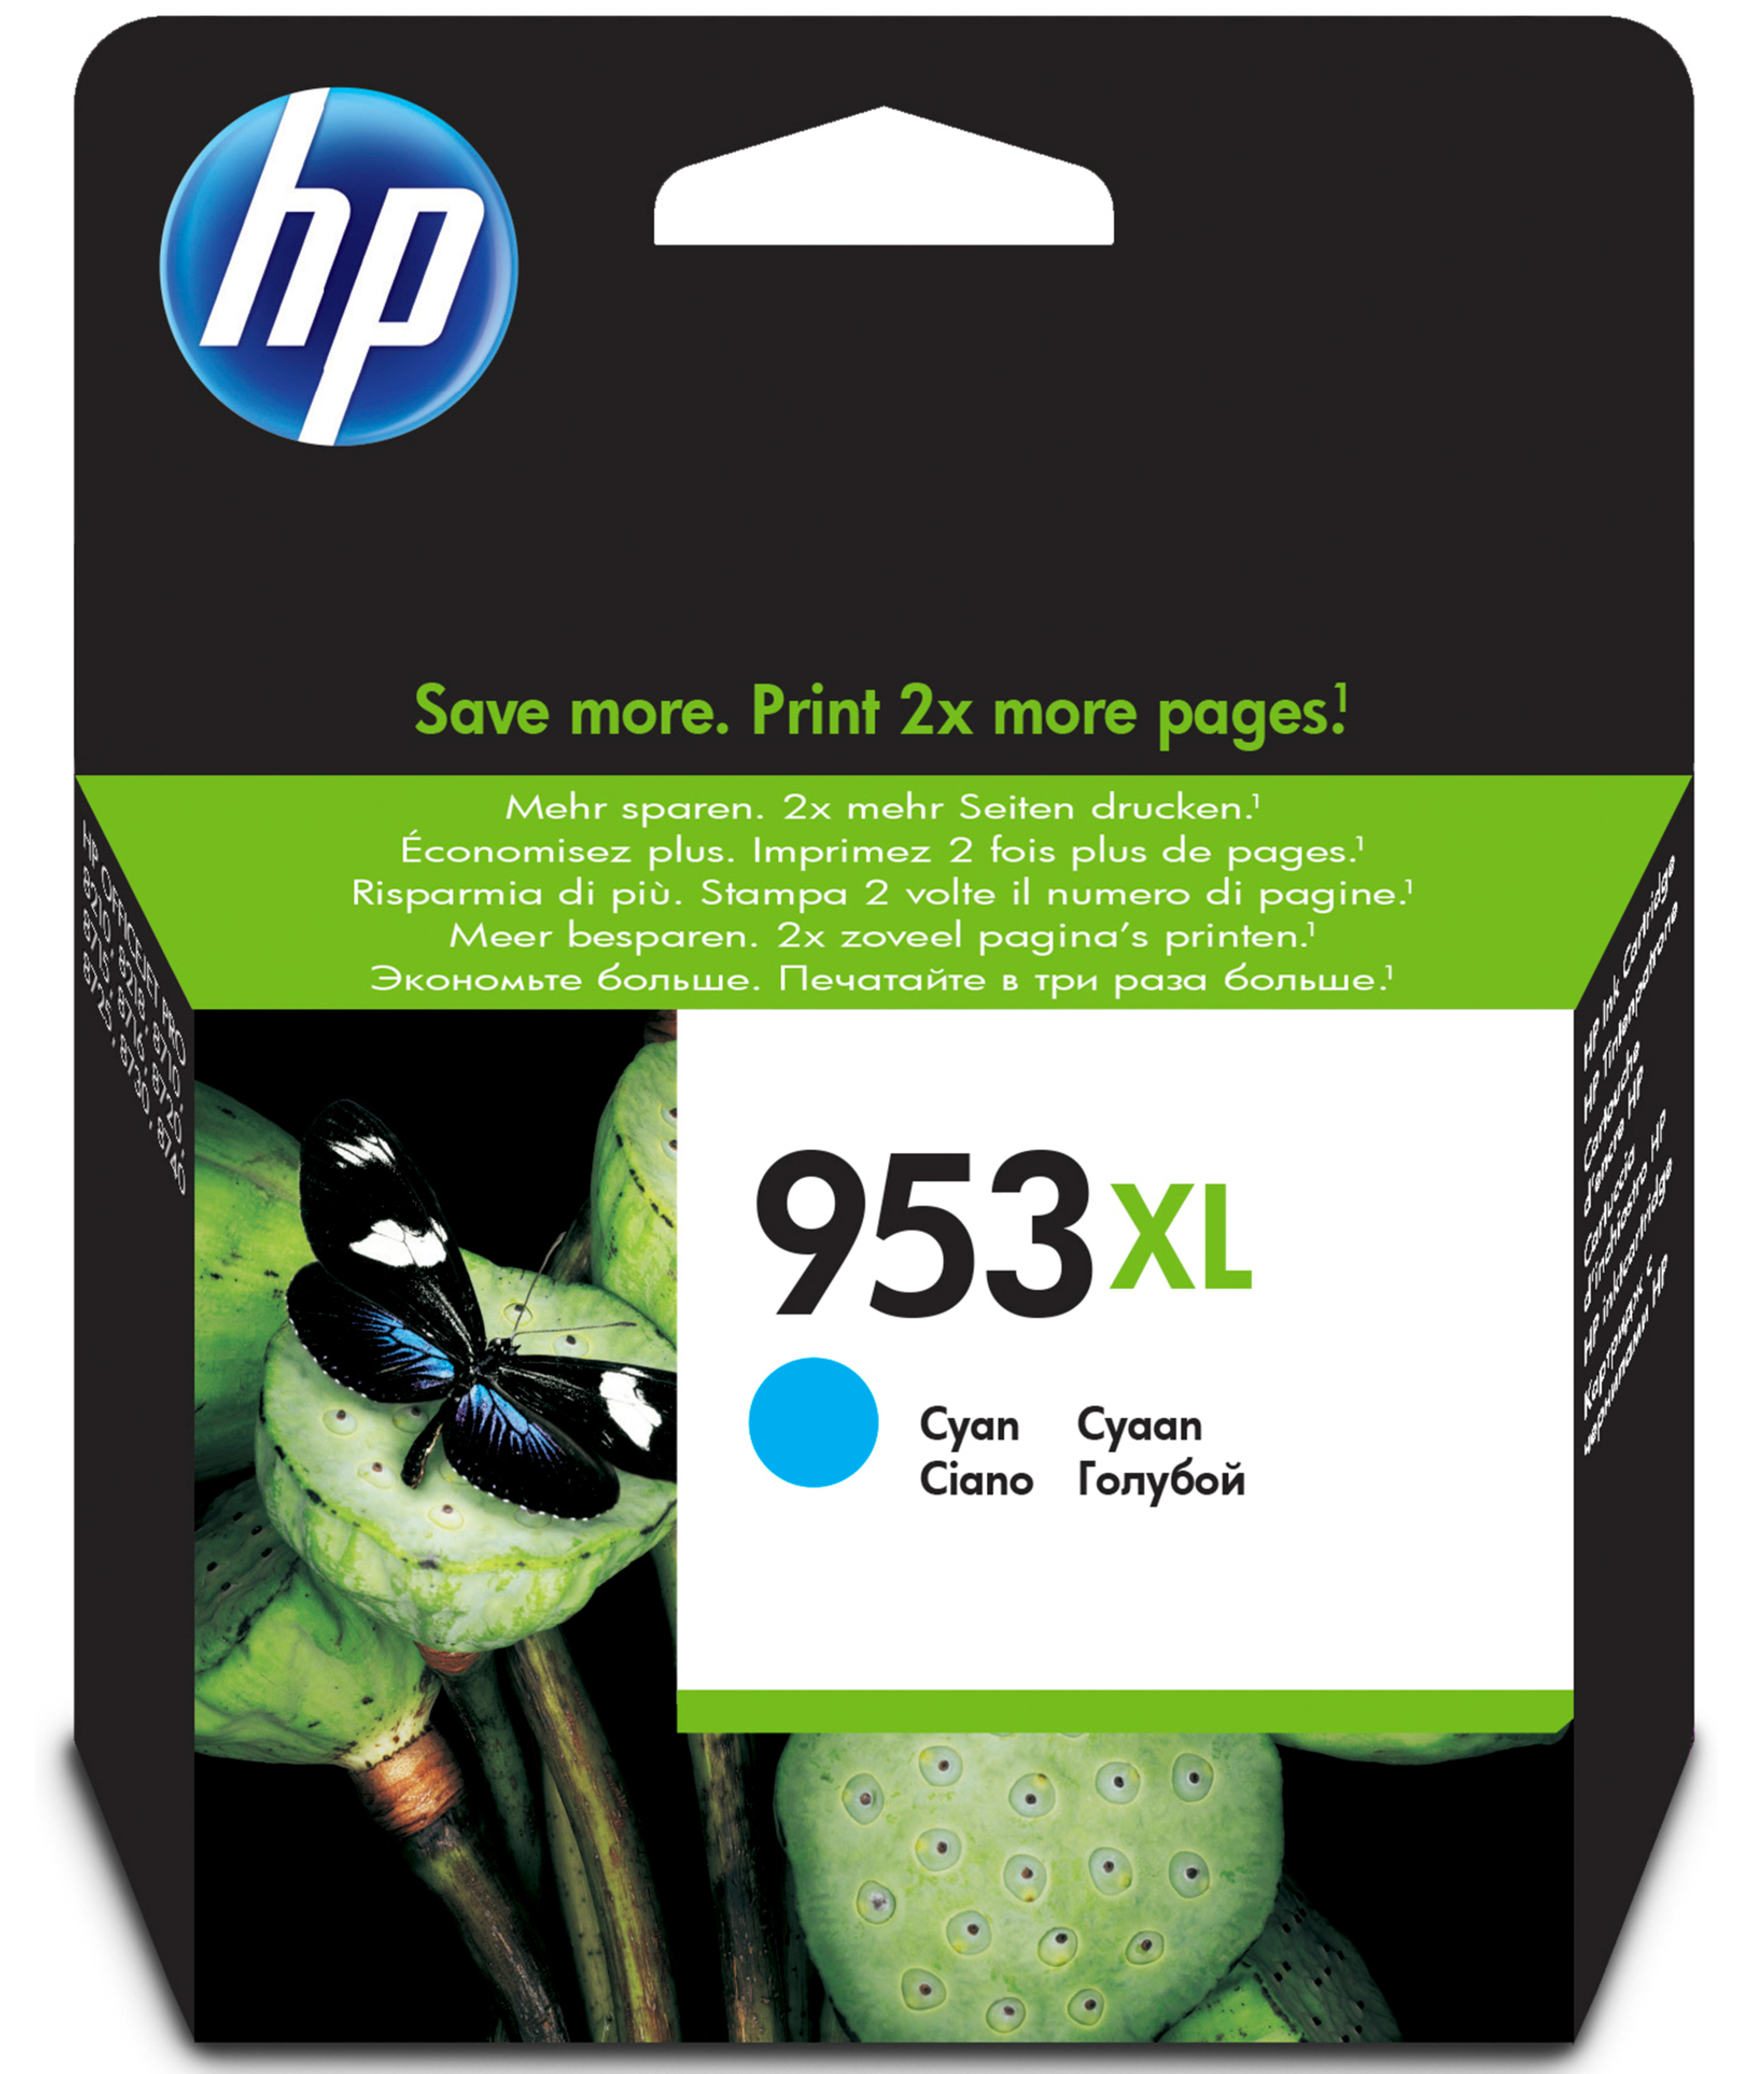 HP Hp 953xl Original Hy Ink Cart Cyan F6u16ae - AD01